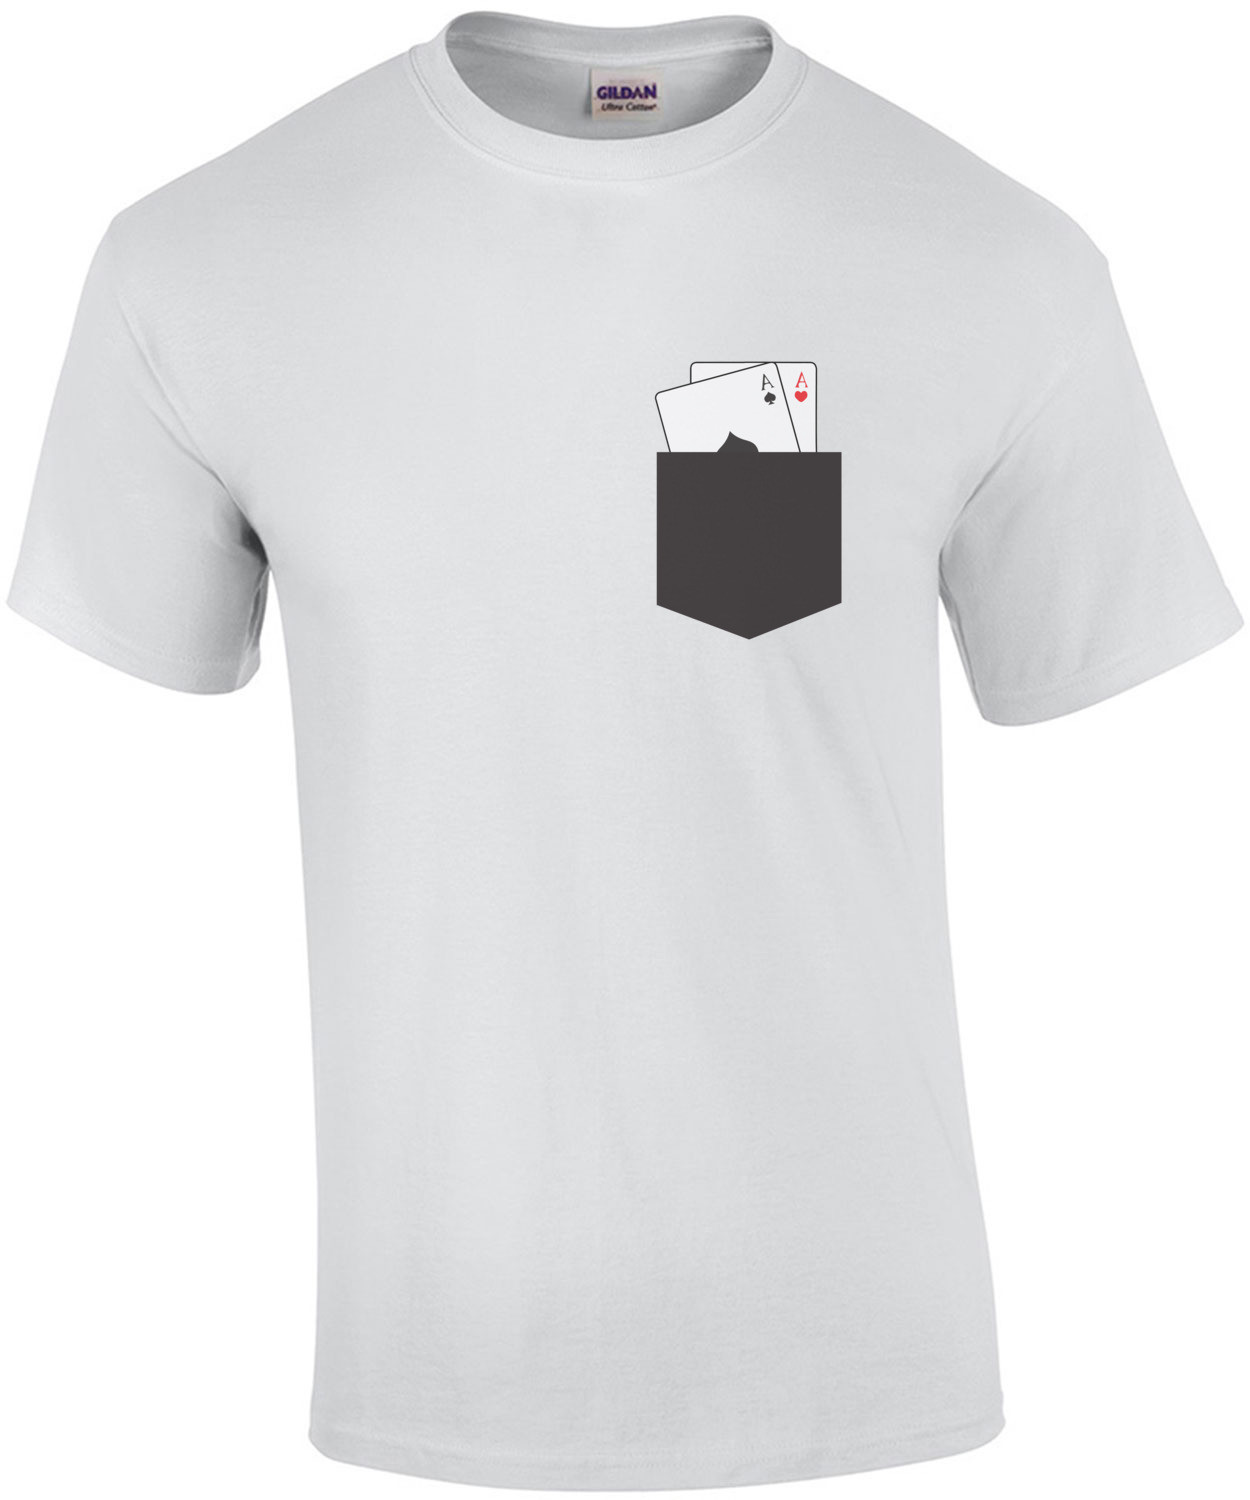 Pocket Aces - Poker T-Shirt